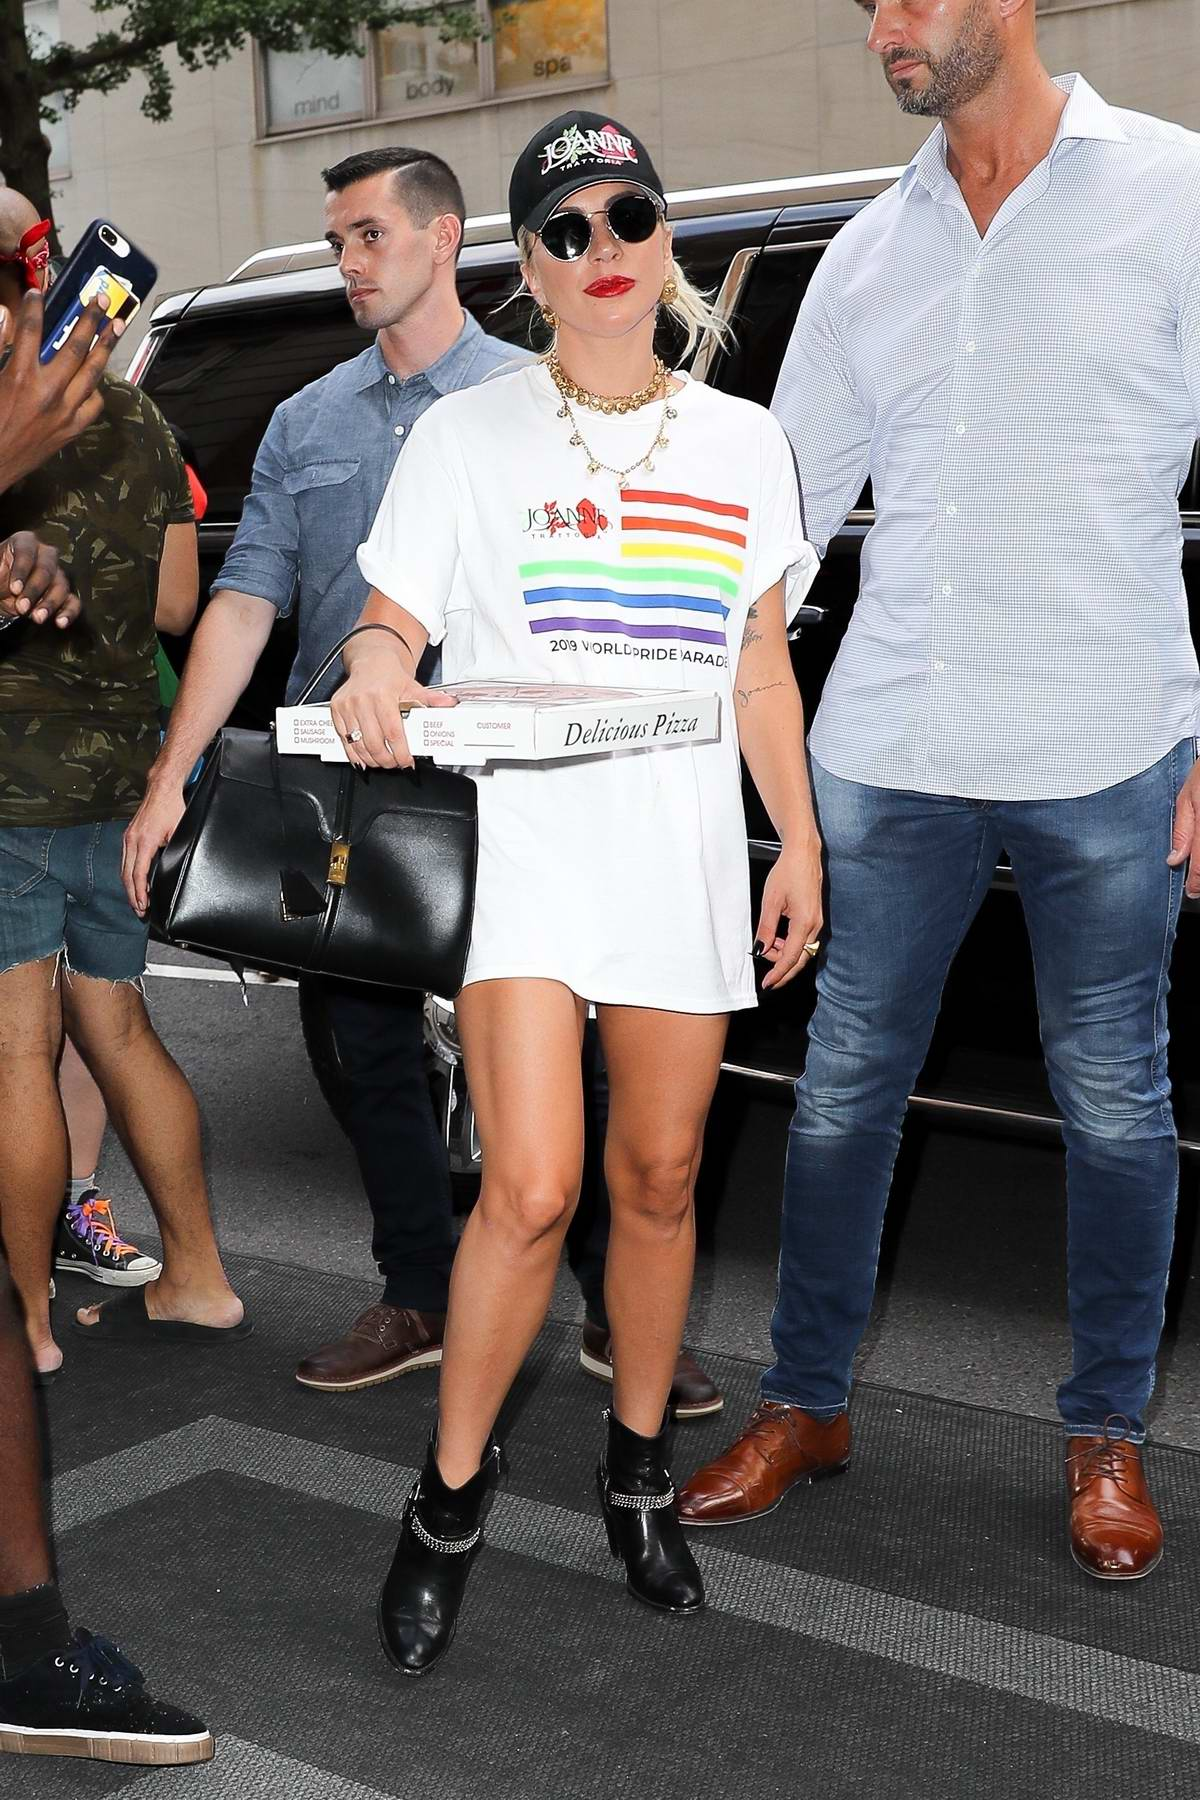 Lady Gaga holds a pizza box as she returns after making an appearance at the WorldPride event in New York City